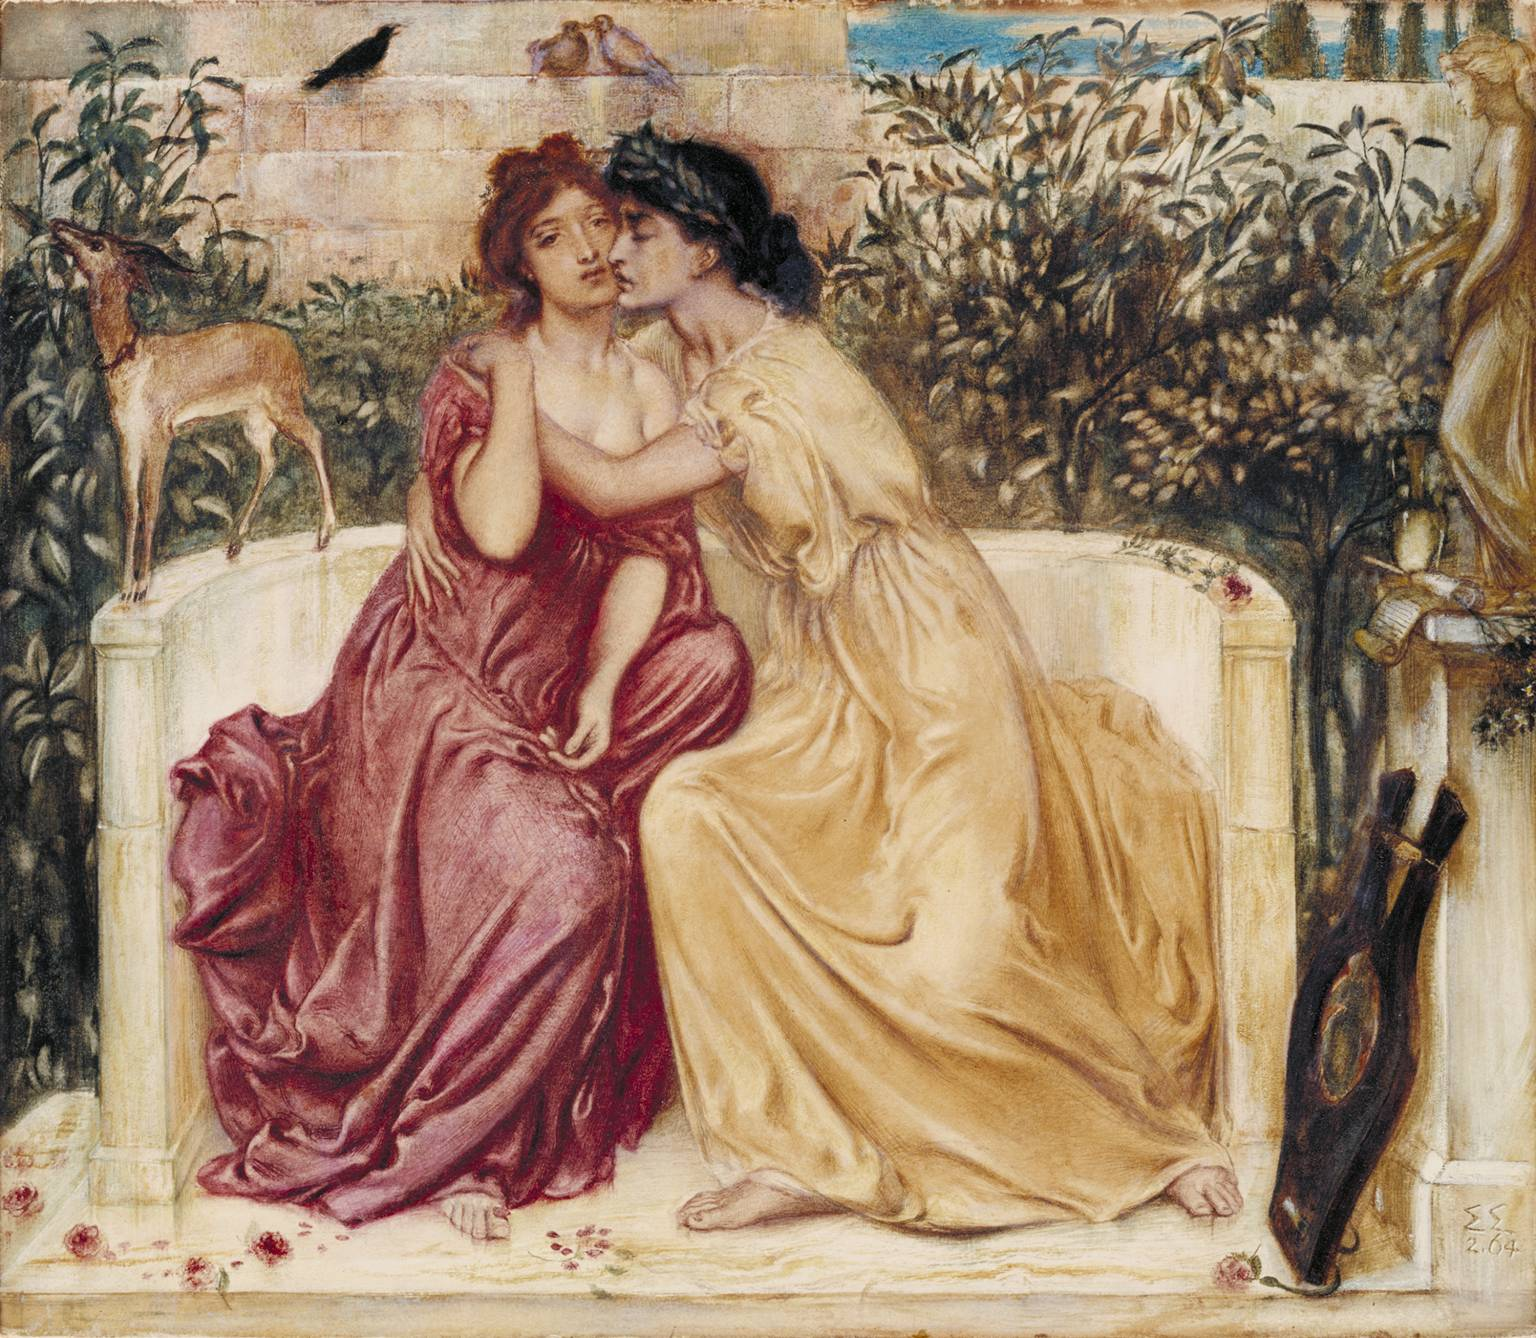 """Simeon Solomon 'Sappho and Erinna in a Garden at Mytilene'"", watercolor painting by Simeon Solomon"